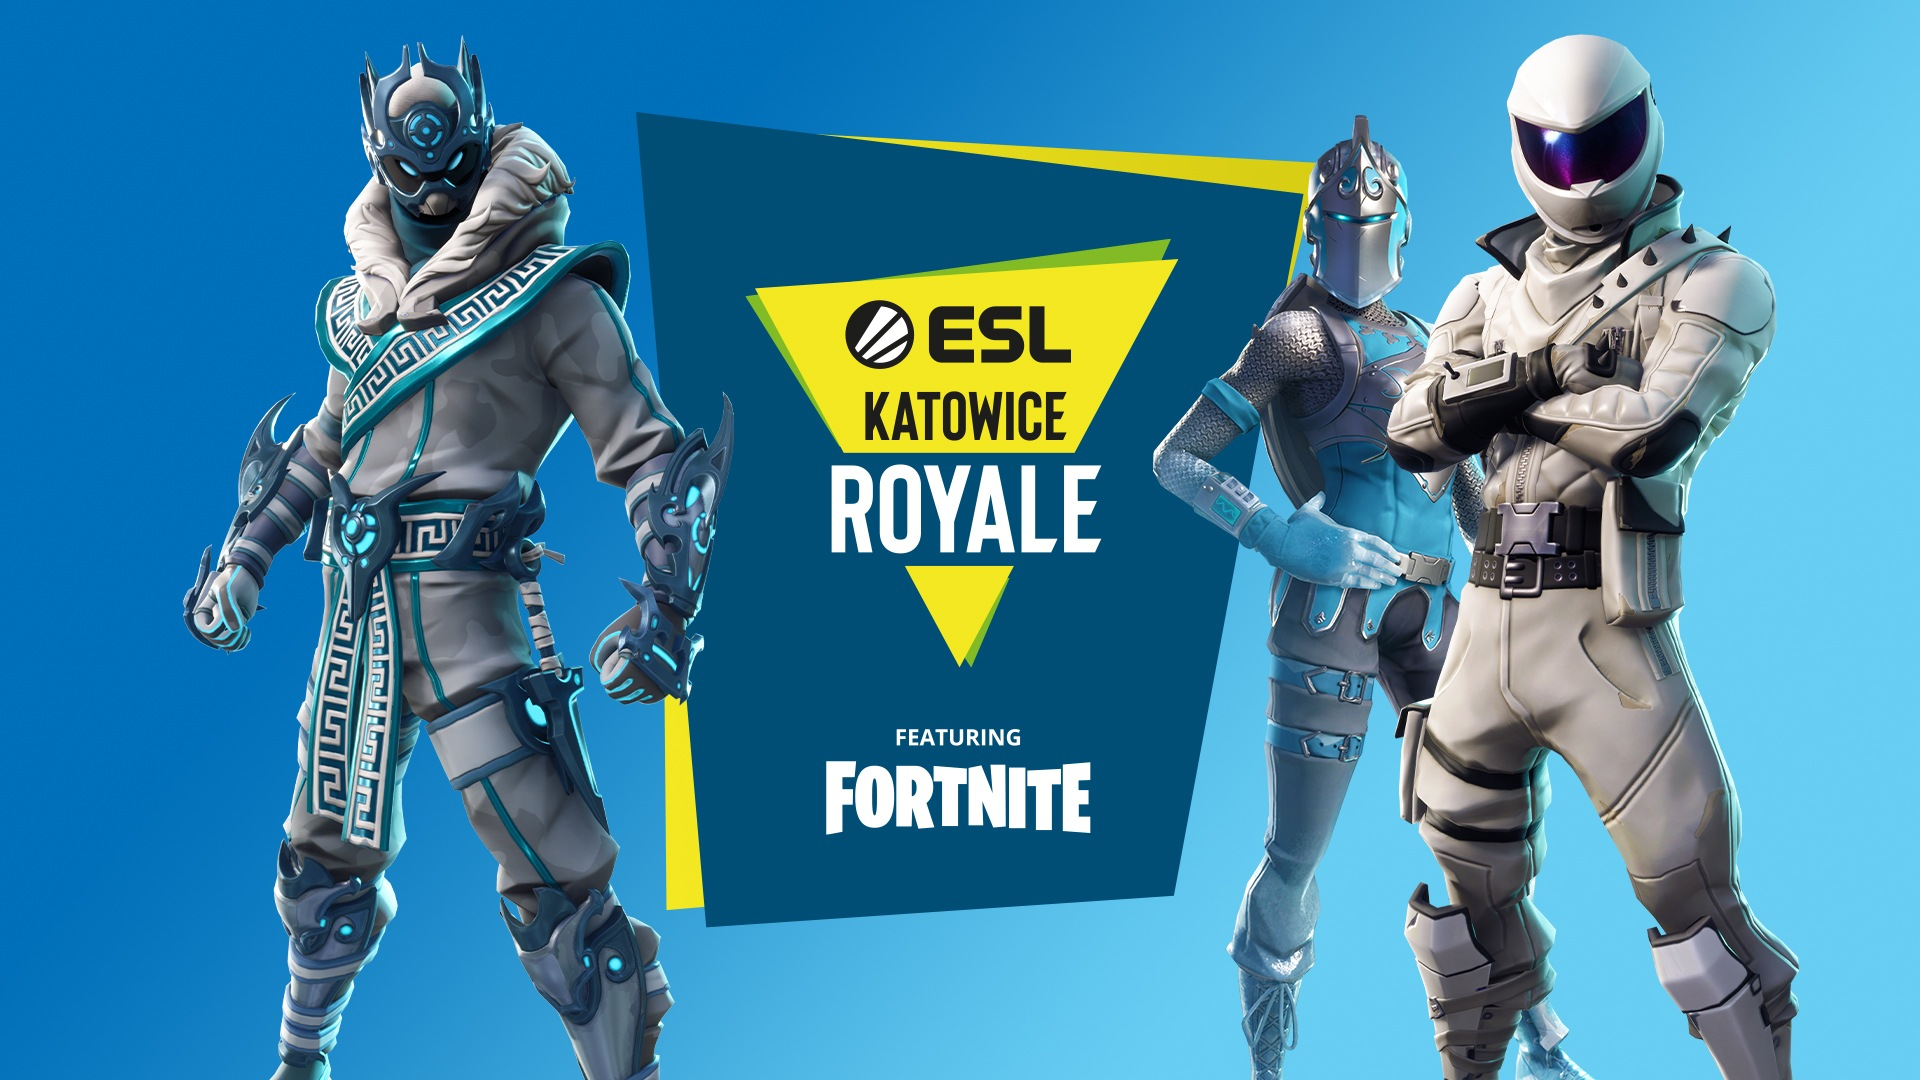 ESL to host a $600,000 Fortnite tournament called Katowice Royale.